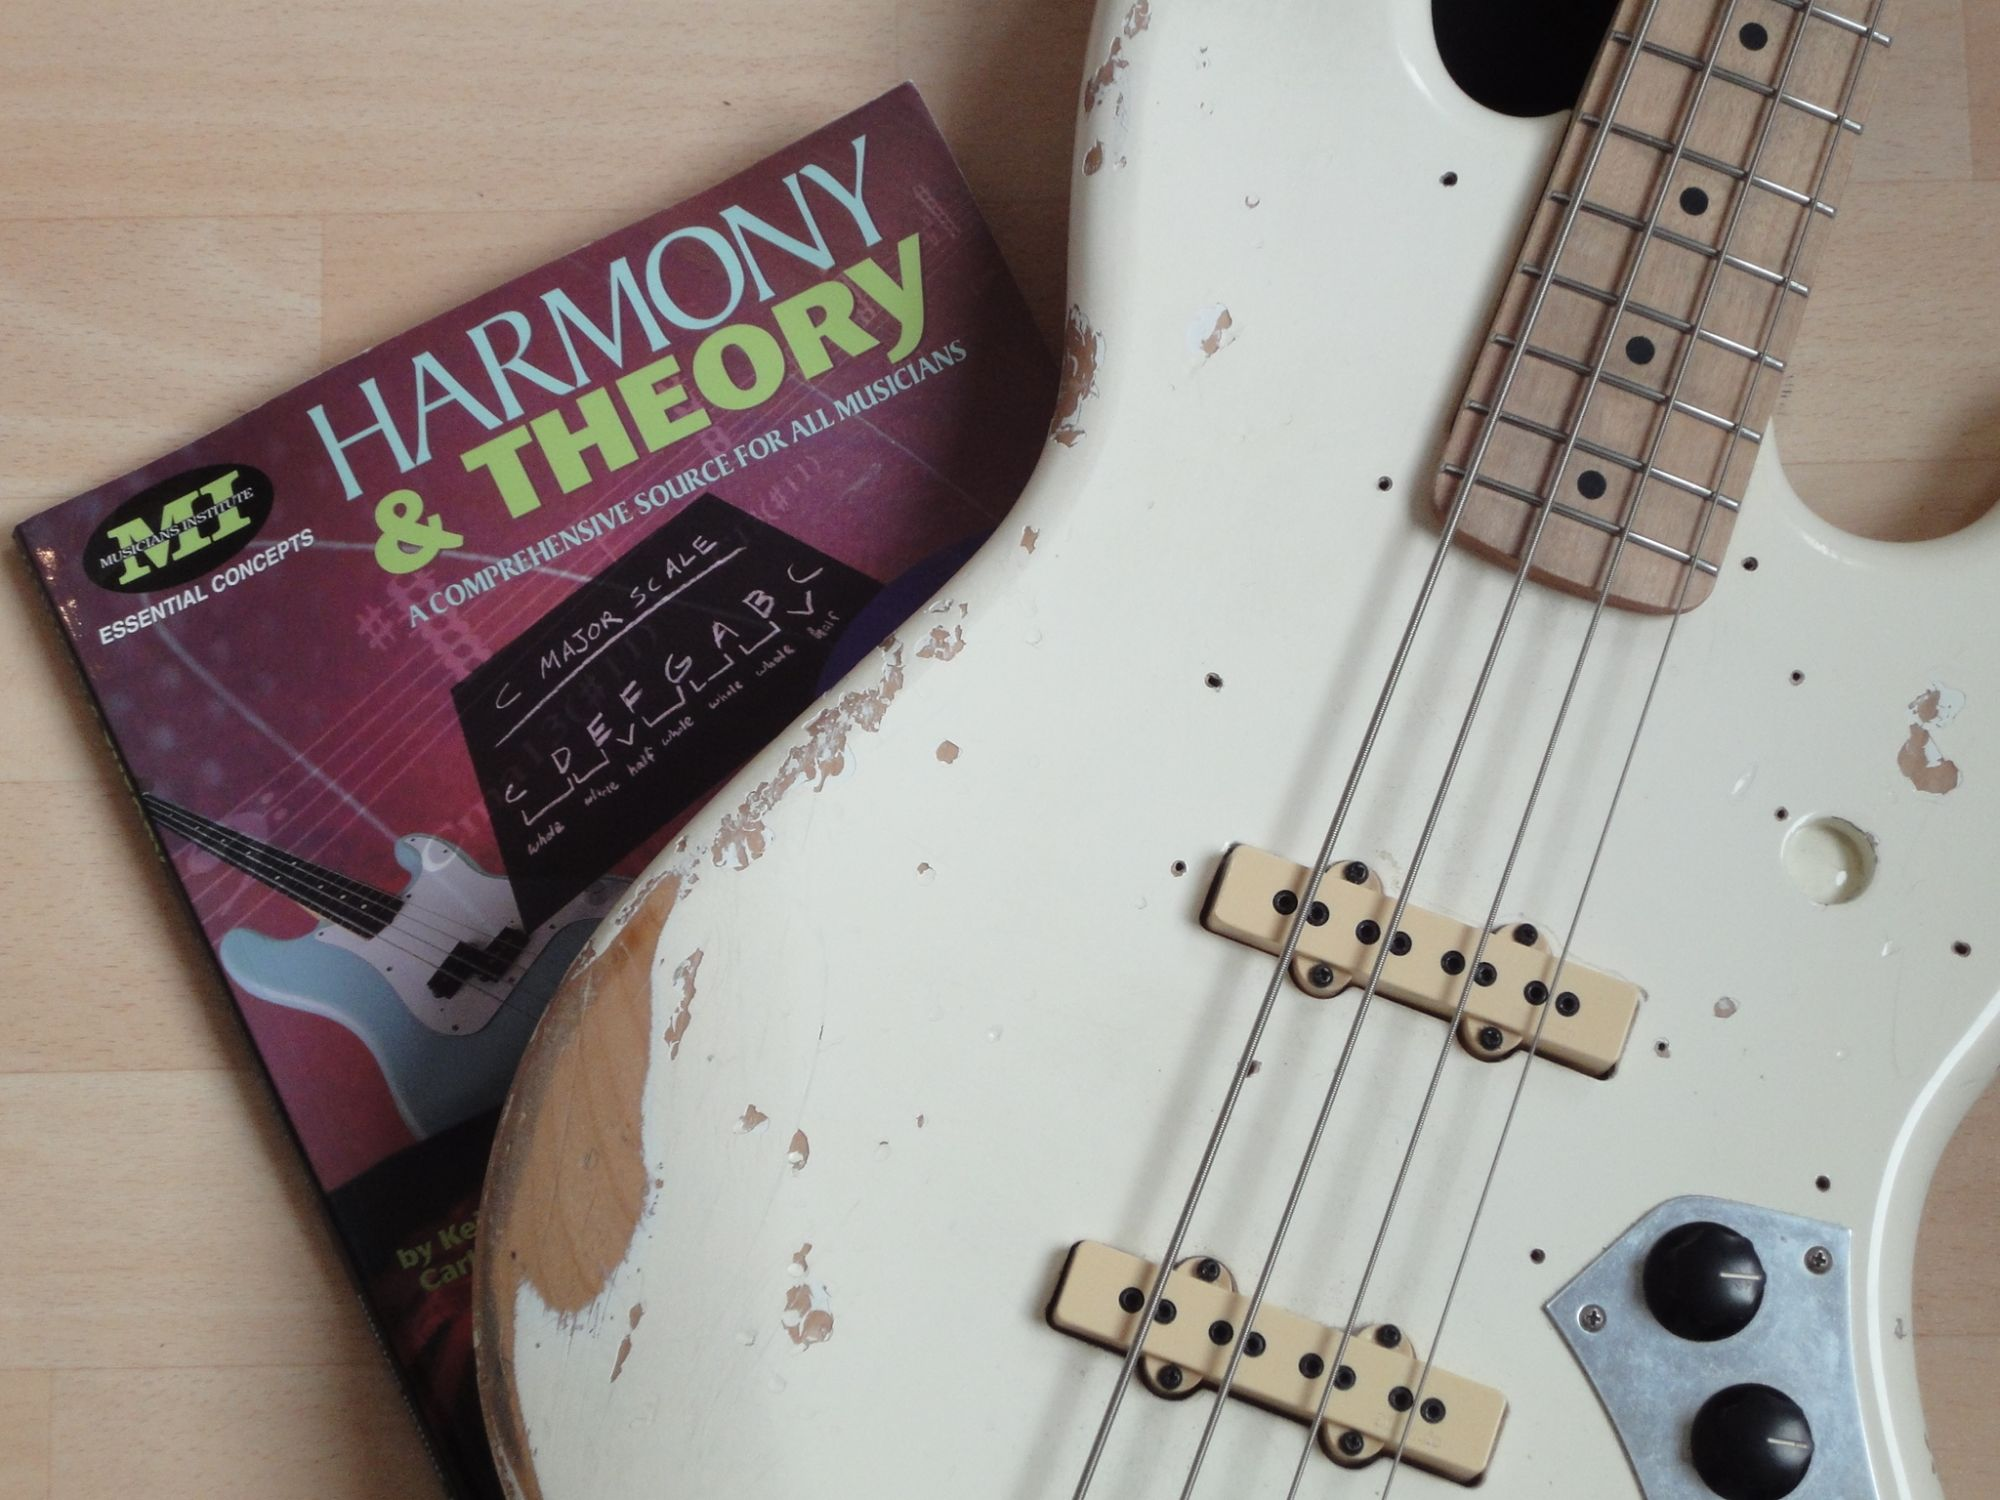 Workshop: Fretboard Harmony for Bass Guitar I - AMAZONA.de